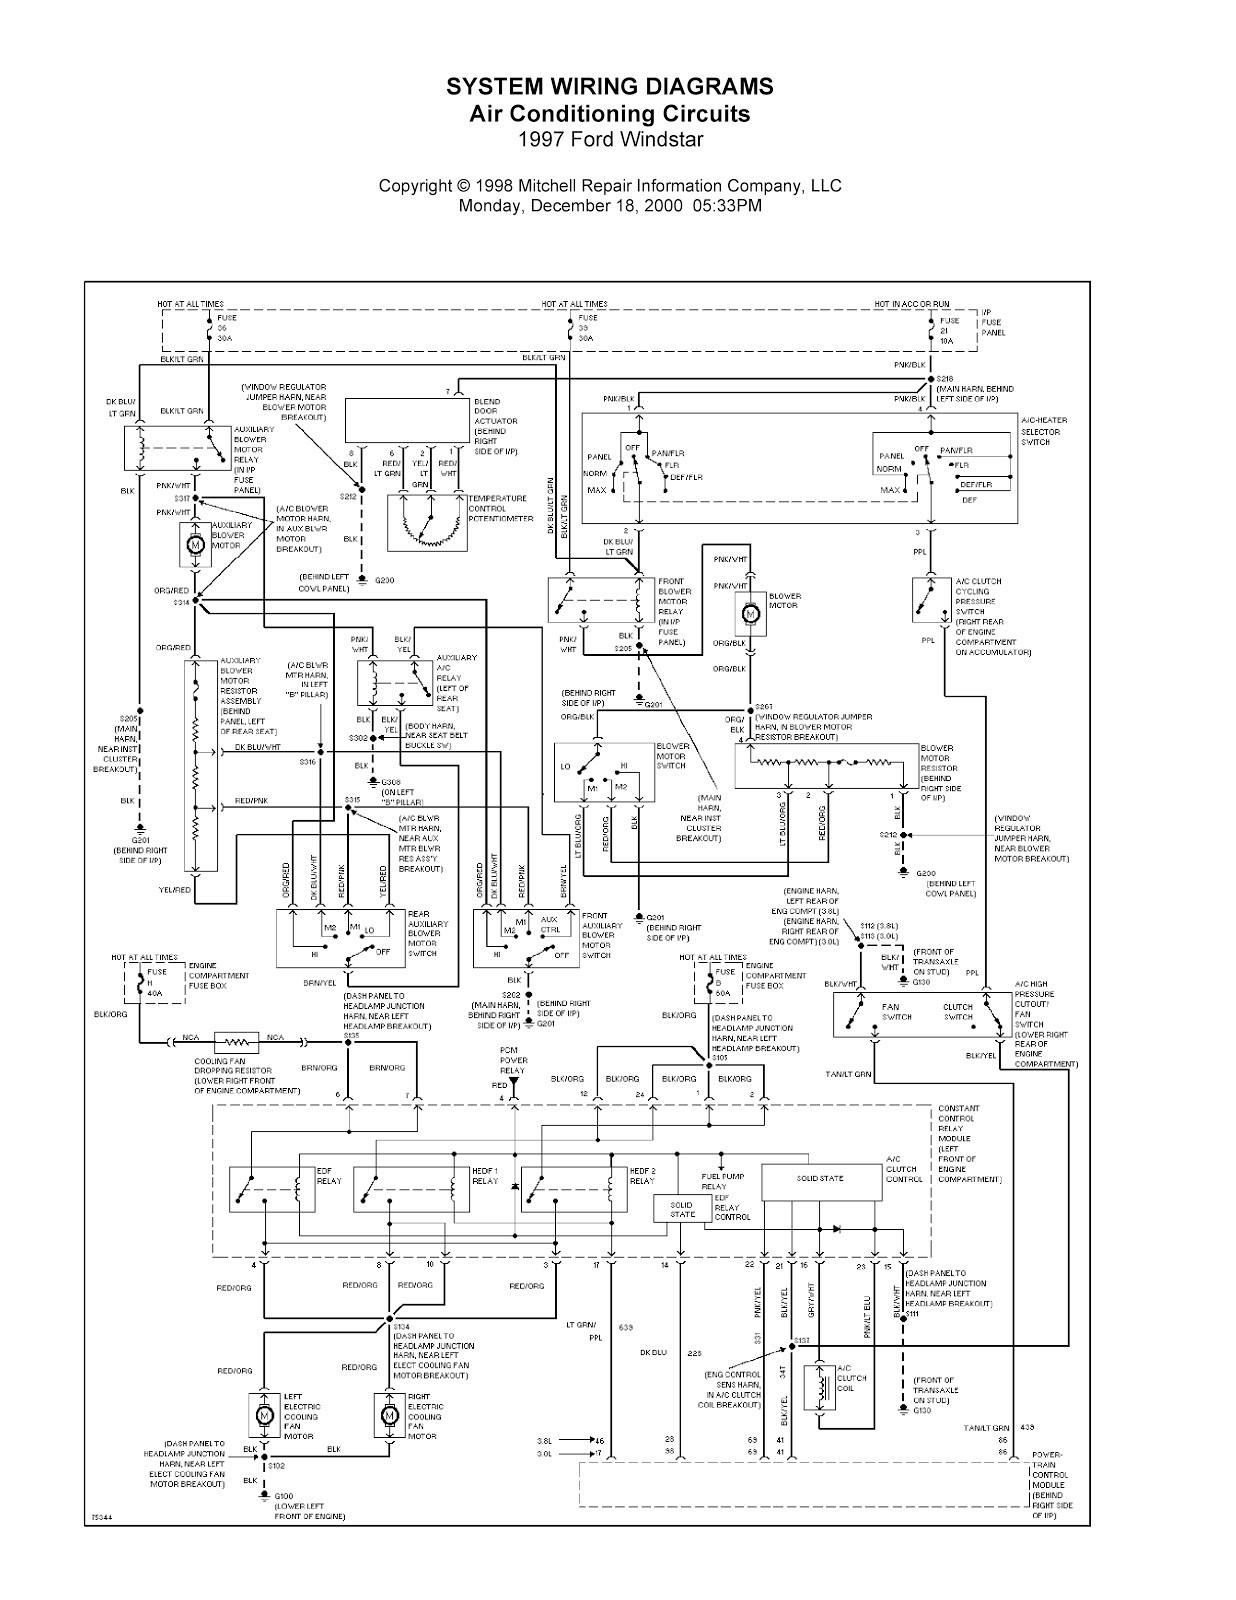 2002 F 750 Ford Wiring Diagram Library F750 For 2 Sd Ac House Symbols U2022 Rh Maxturner Co 2012 F650